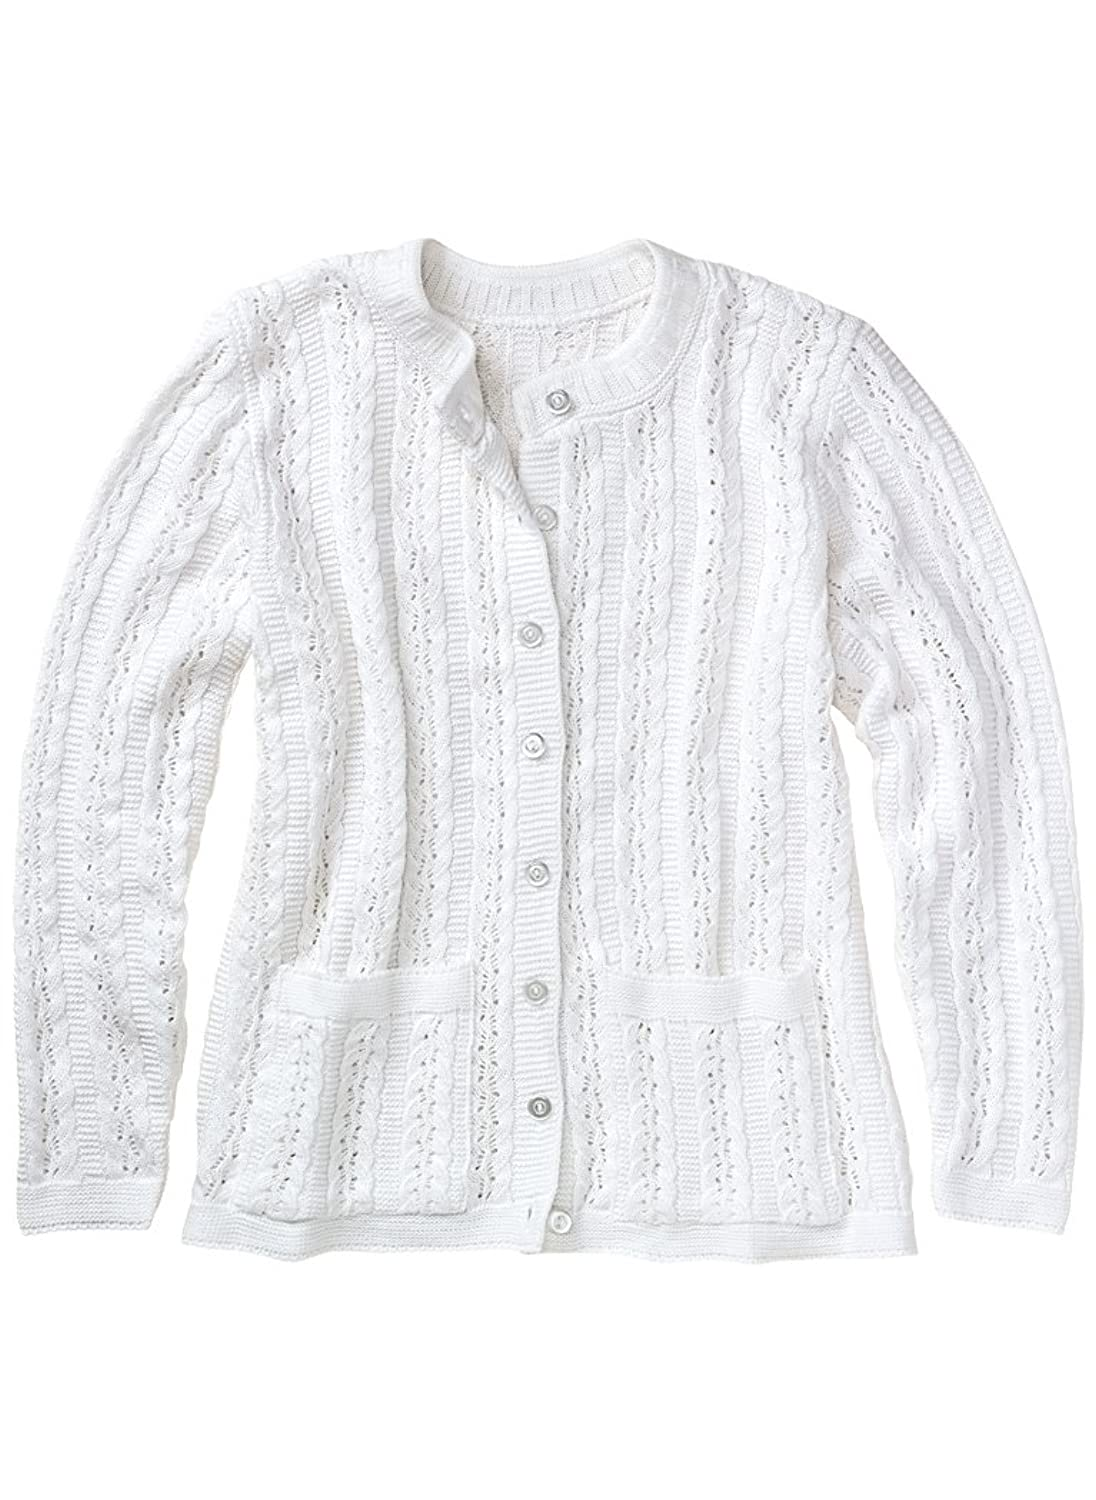 1940s Teenage Fashion: Girls Cable Stitch Cardigan $29.99 AT vintagedancer.com